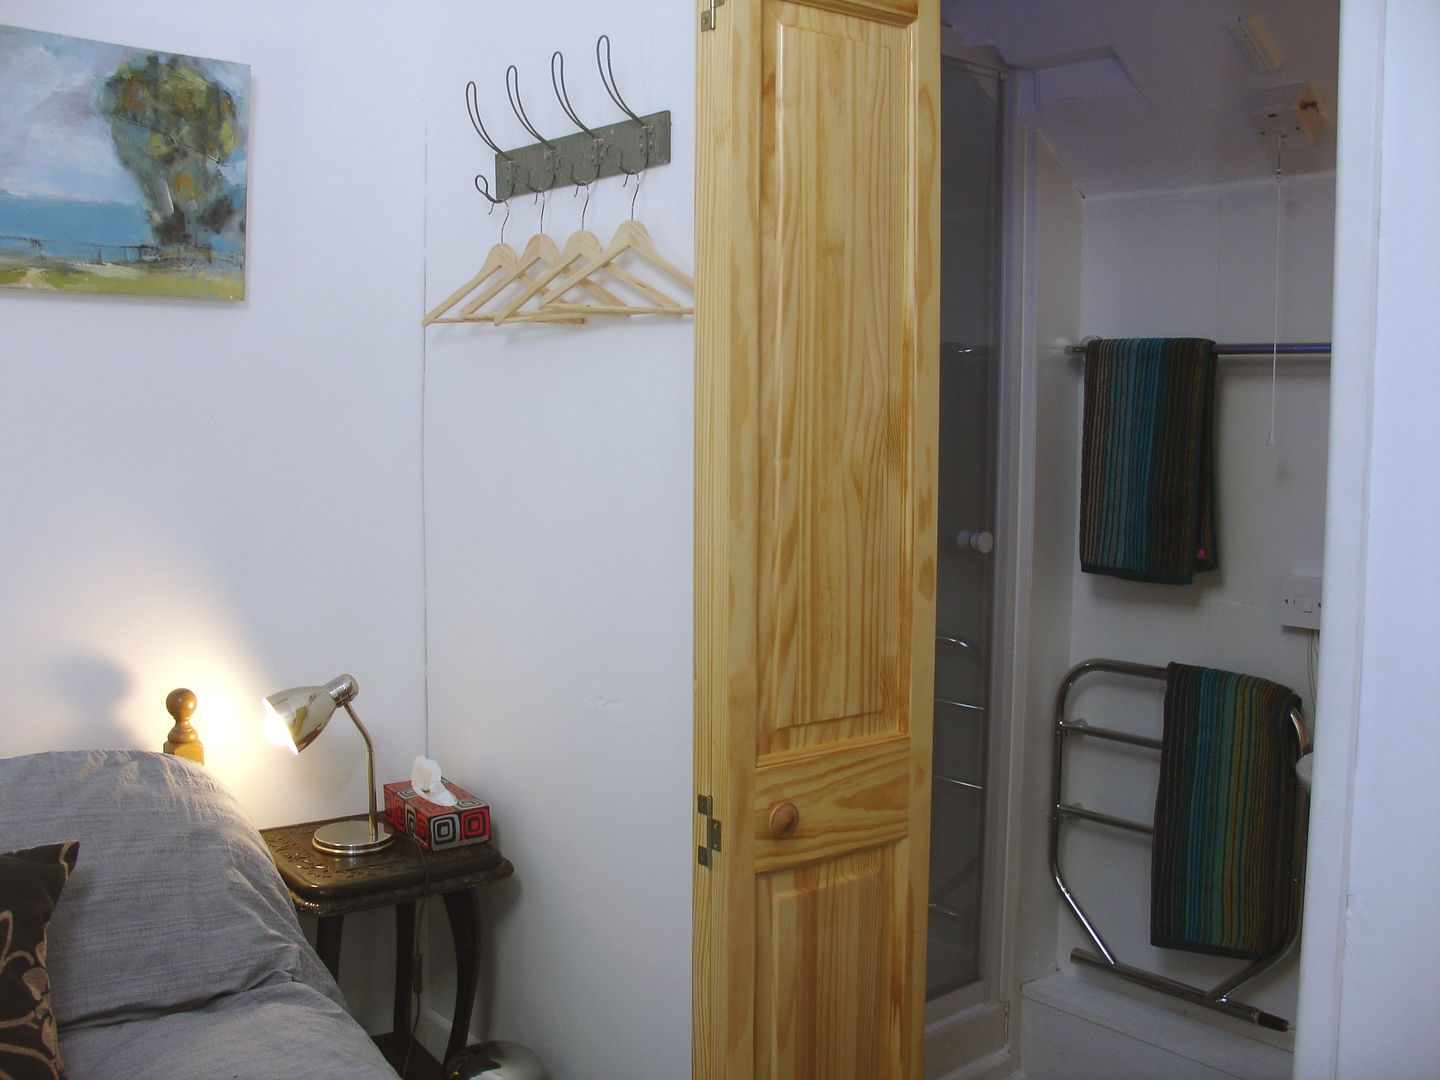 The Birch Studio Lamorna7